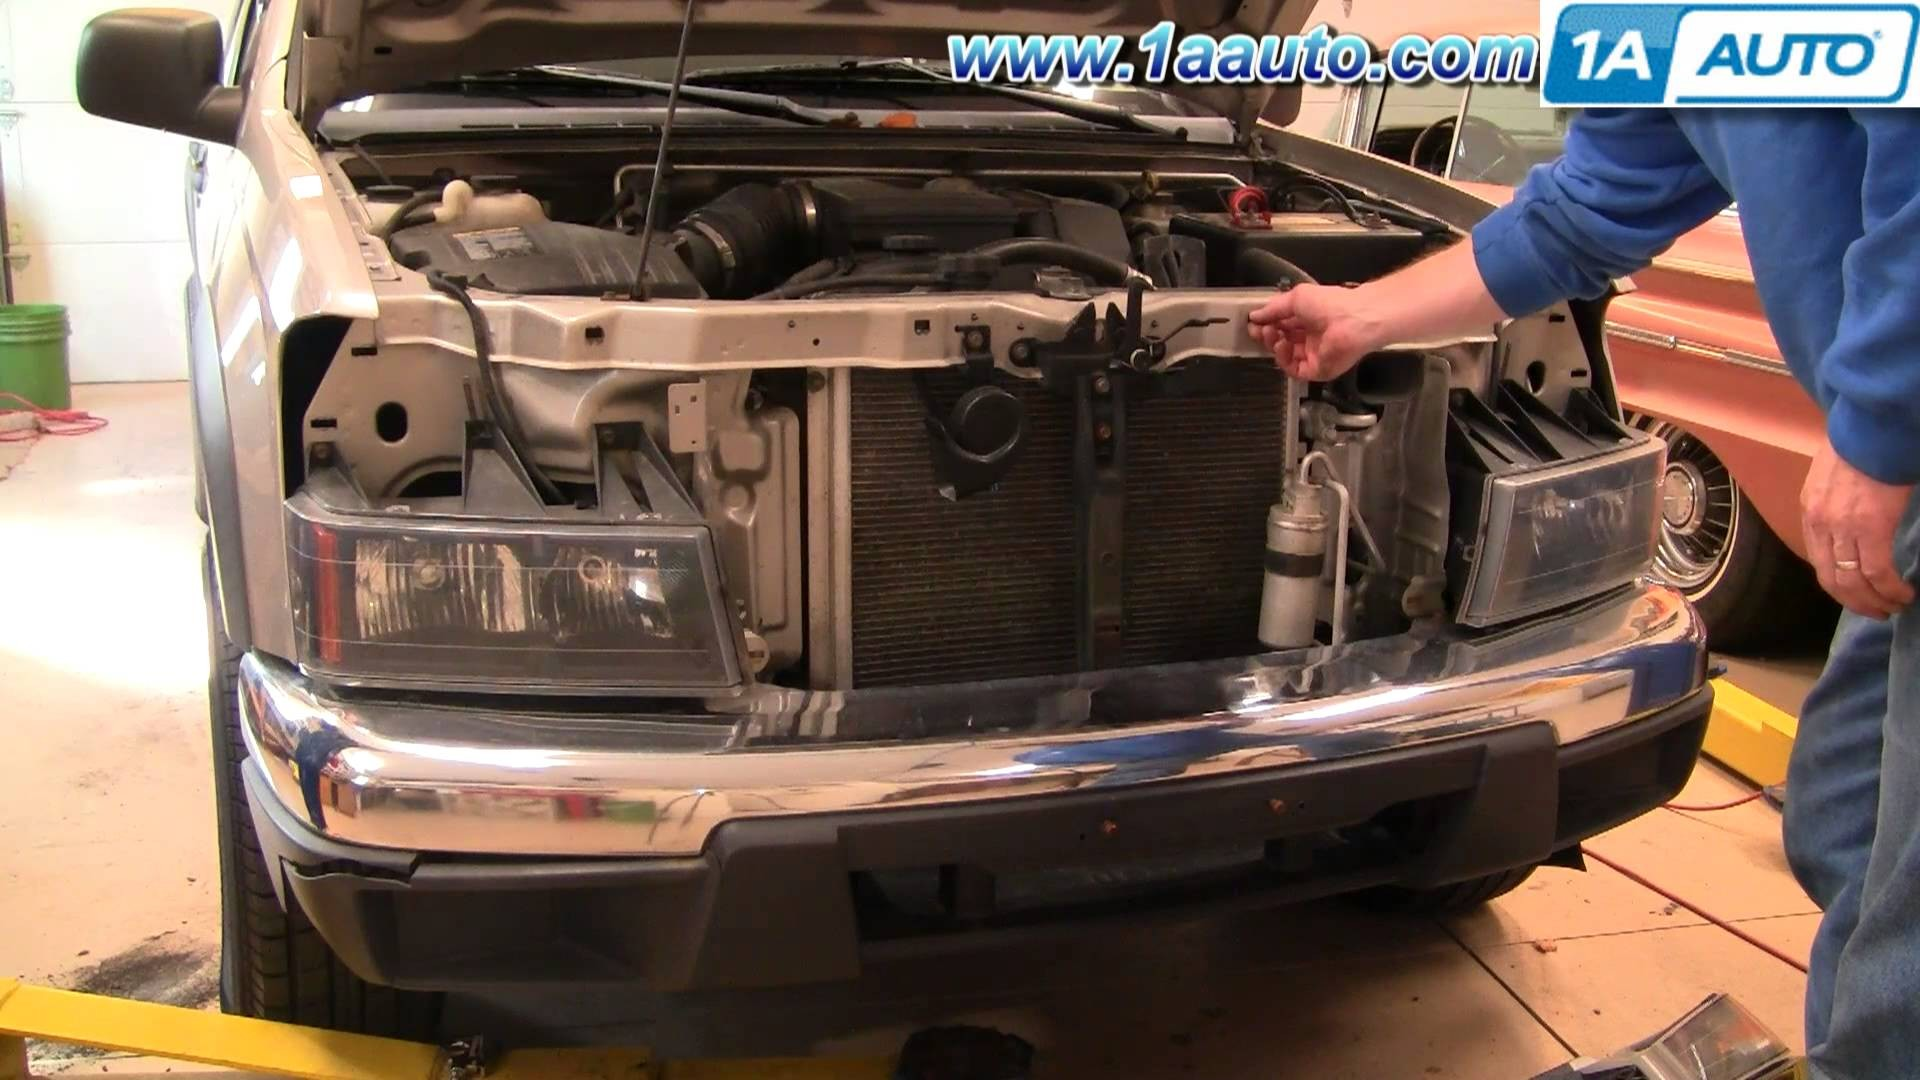 2004 Chevy Colorado Parts Diagram How to Install Replace Remove Front Grille Panel Chevy Colorado 04 Of 2004 Chevy Colorado Parts Diagram